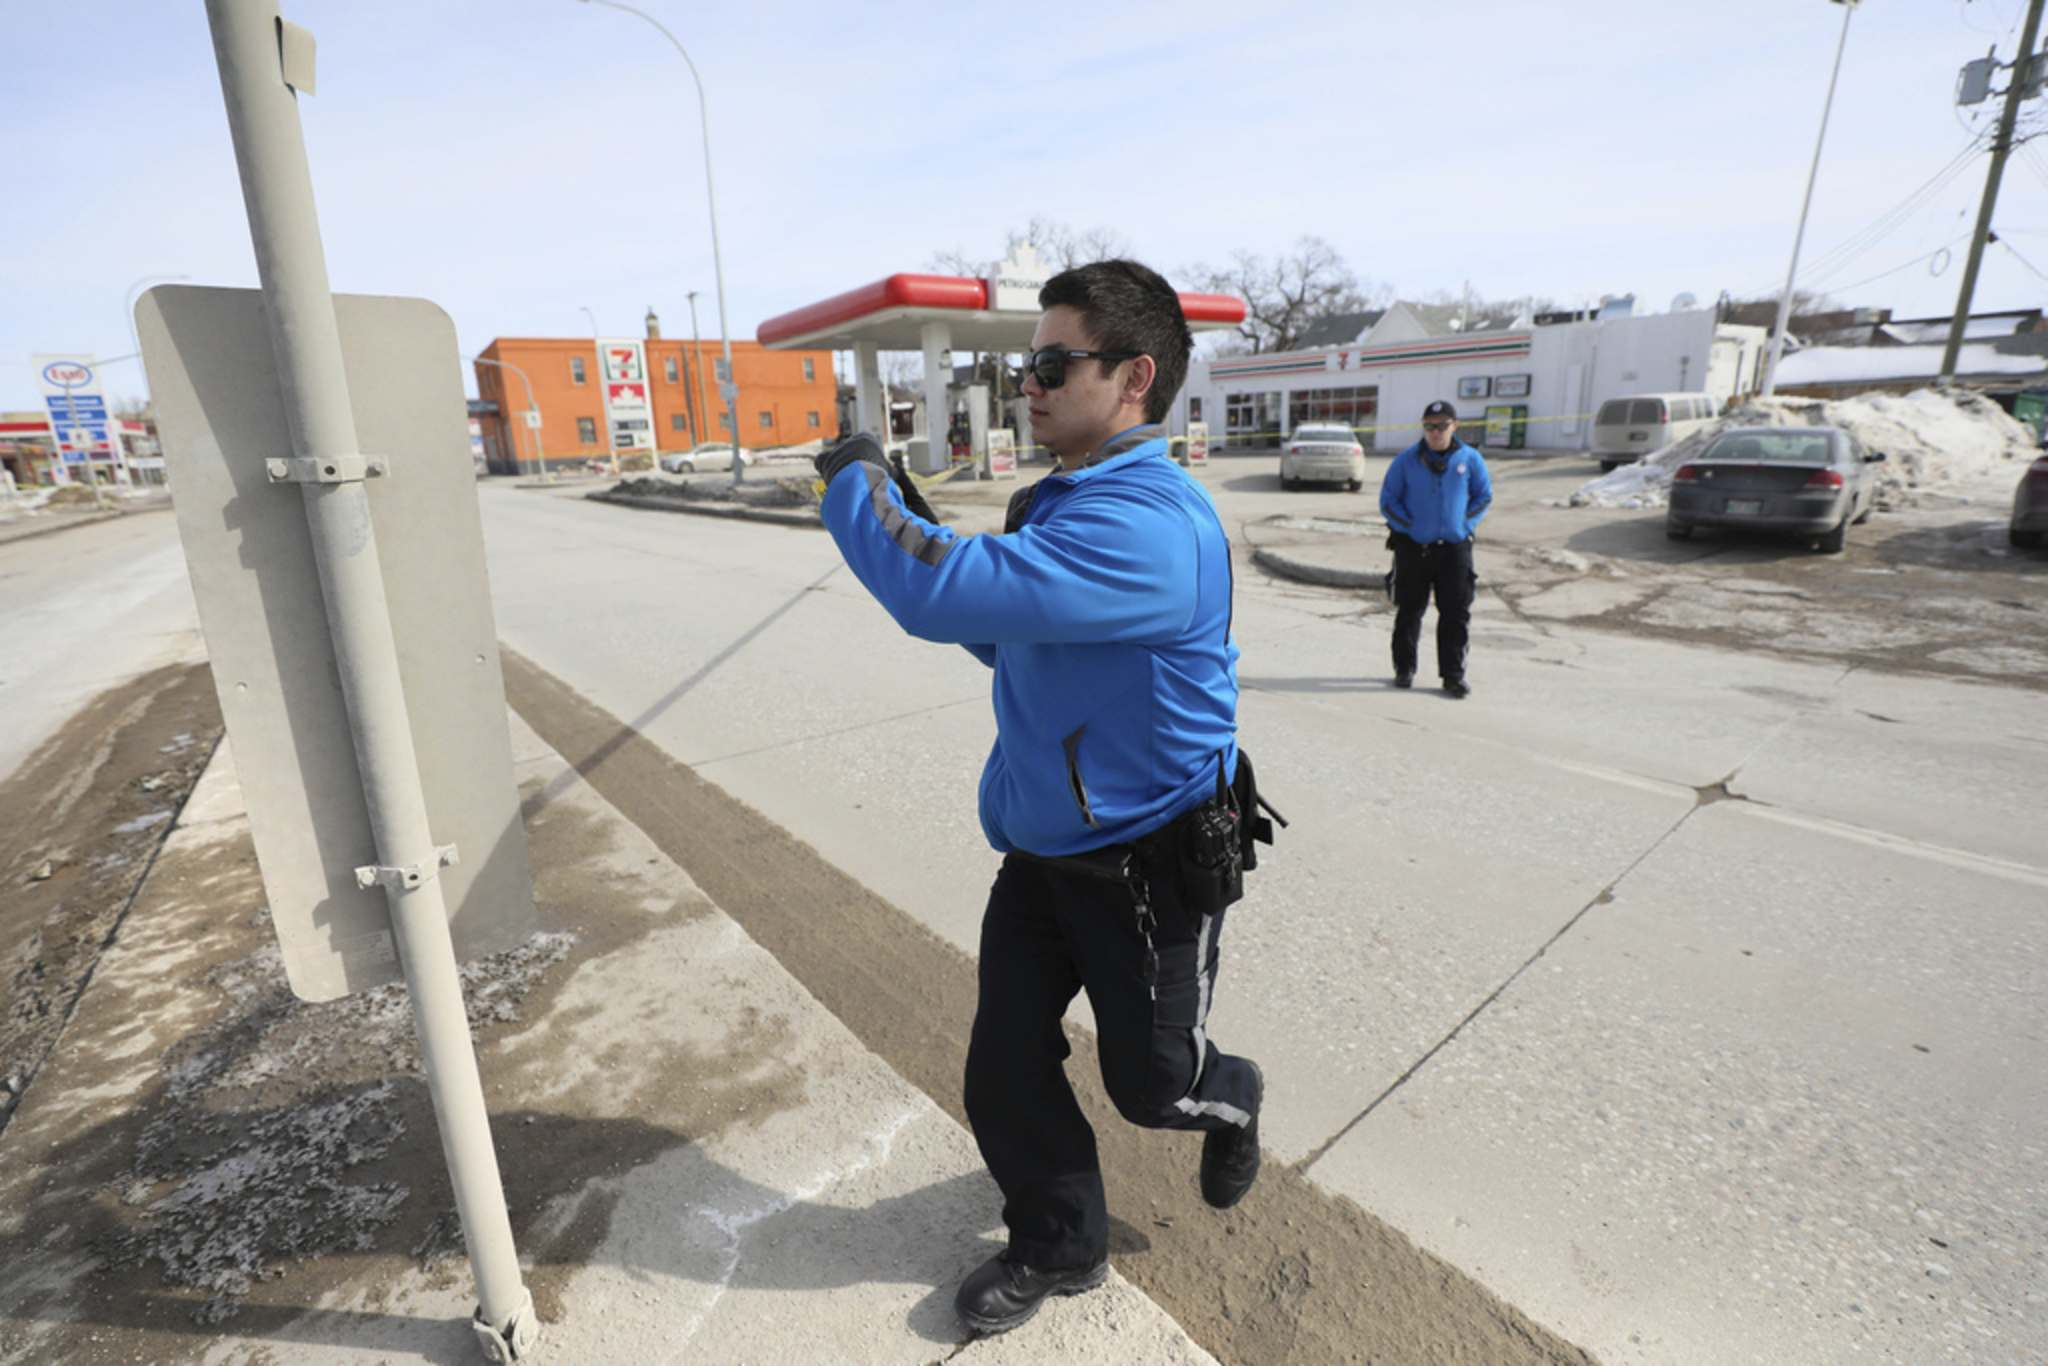 Winnipeg Police cadets tape off the scene Saturday morning. (Ruth Bonneville / Winnipeg Free Press)</p>